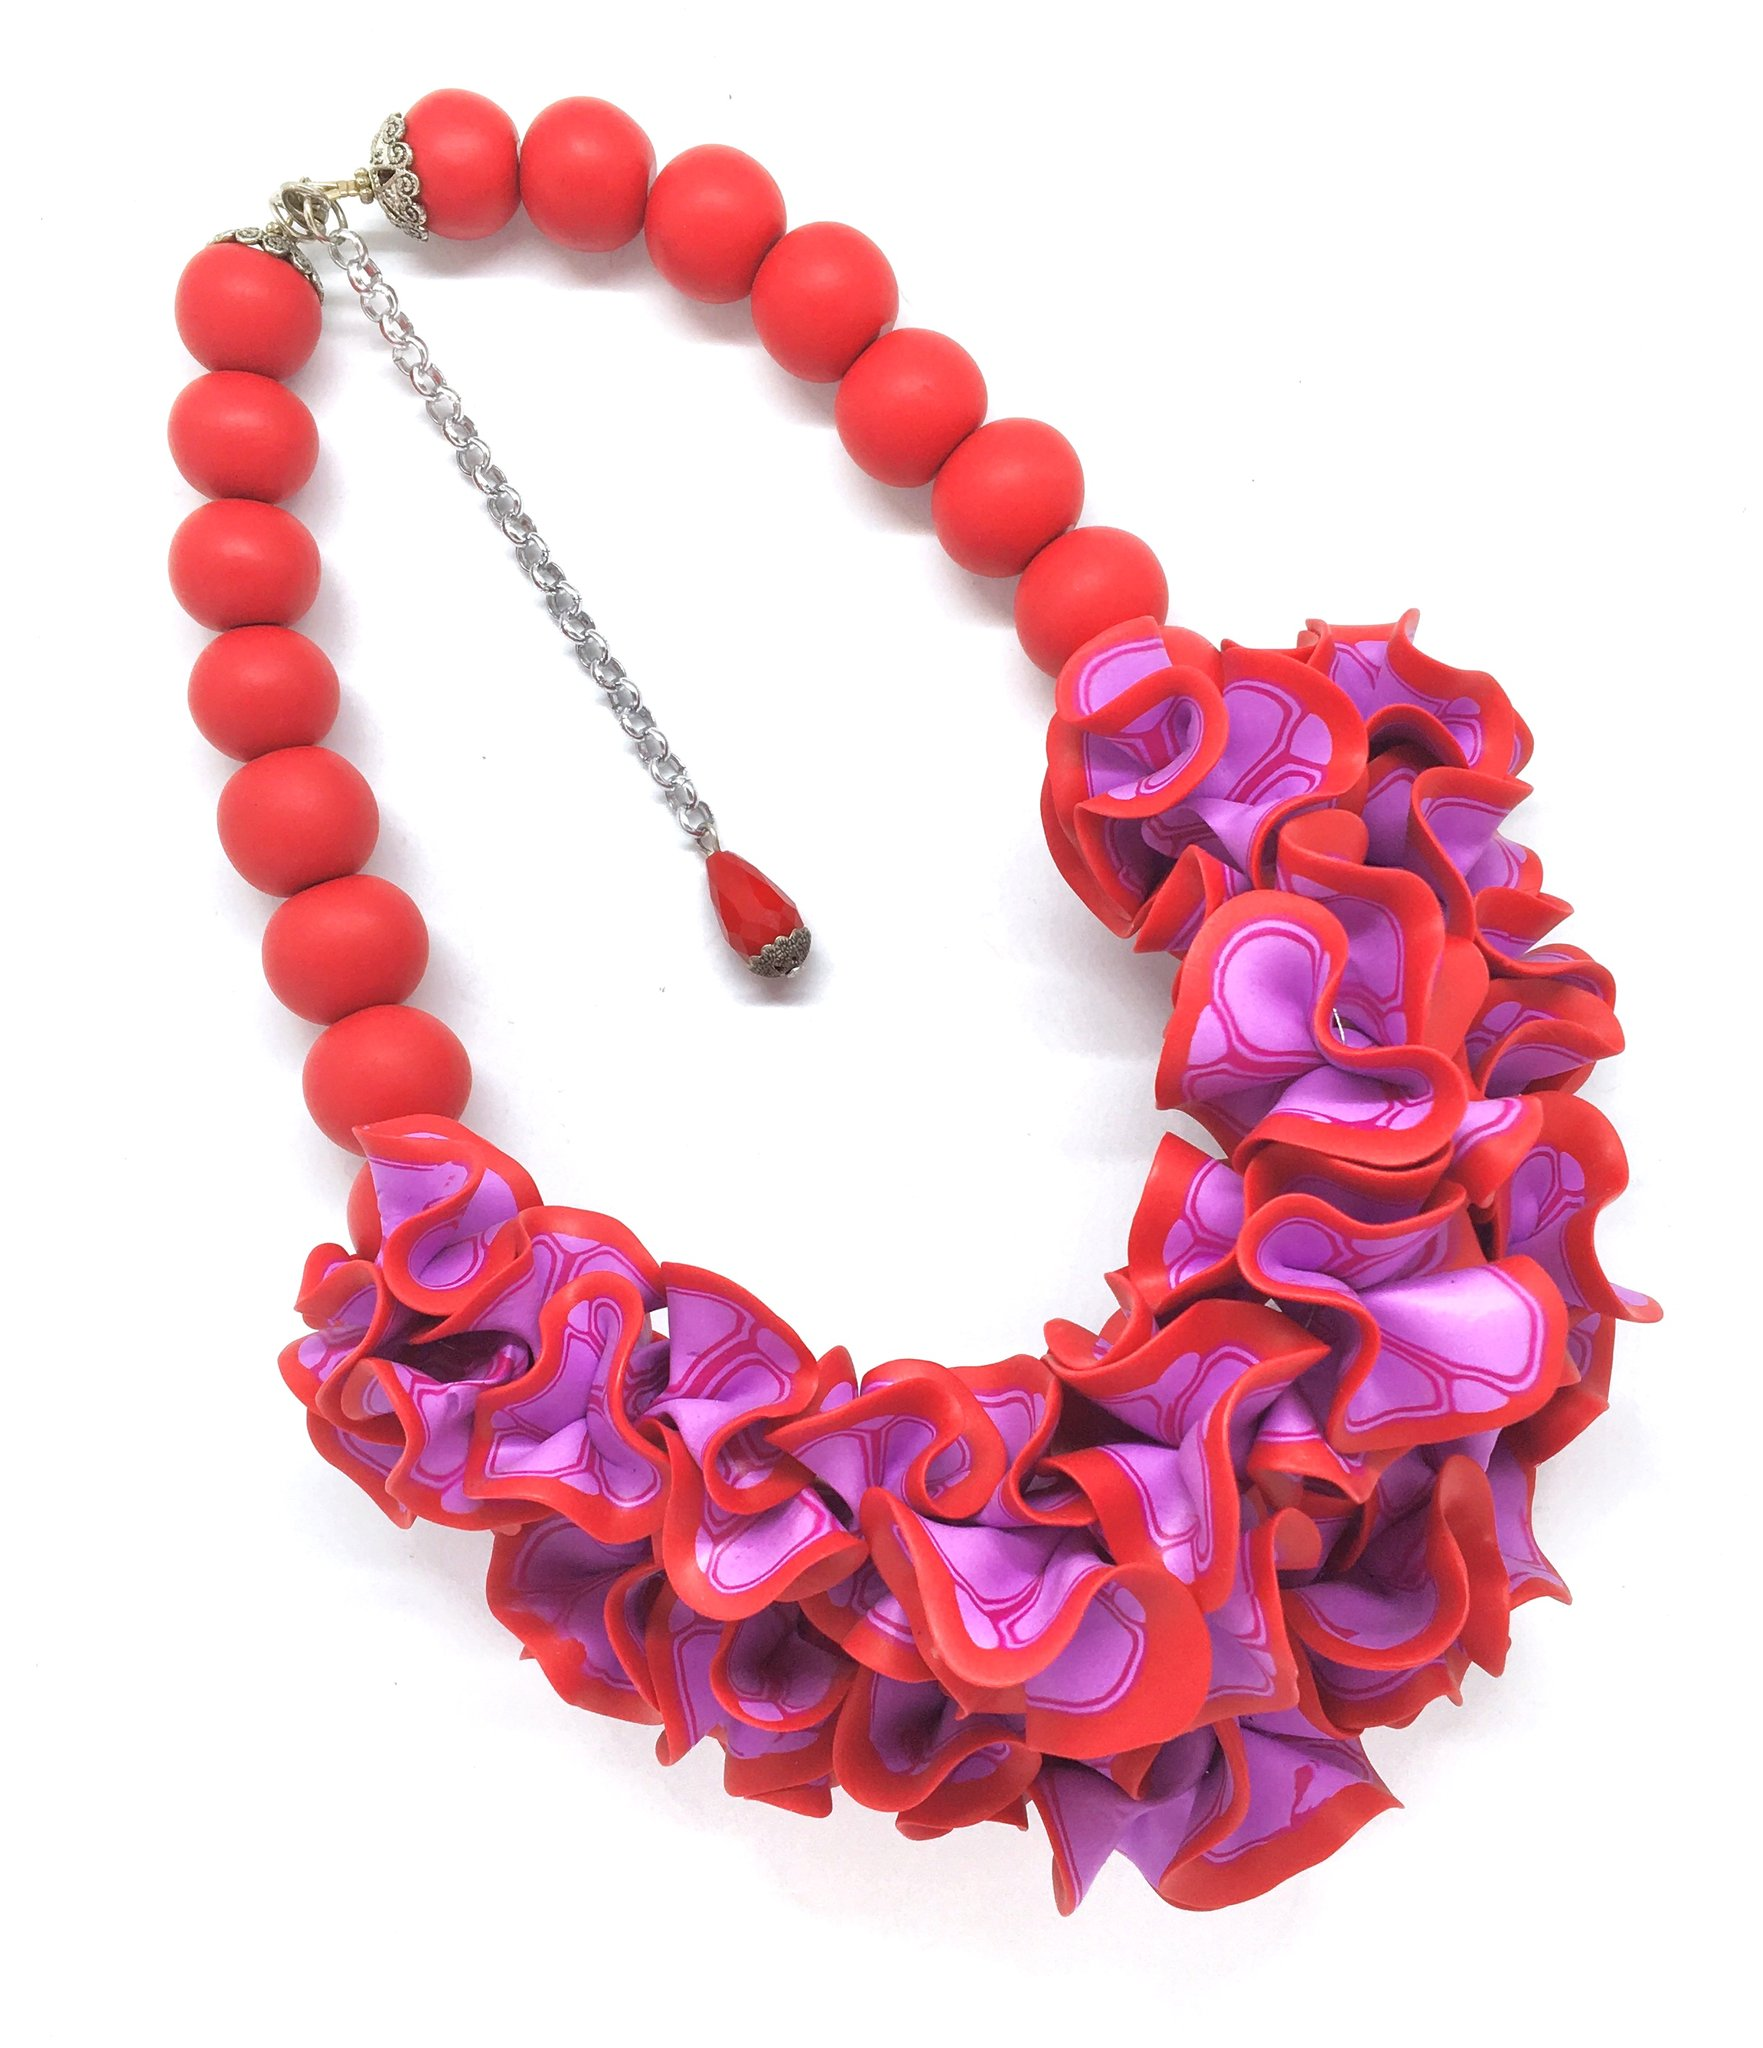 Red and pink ruffle necklace